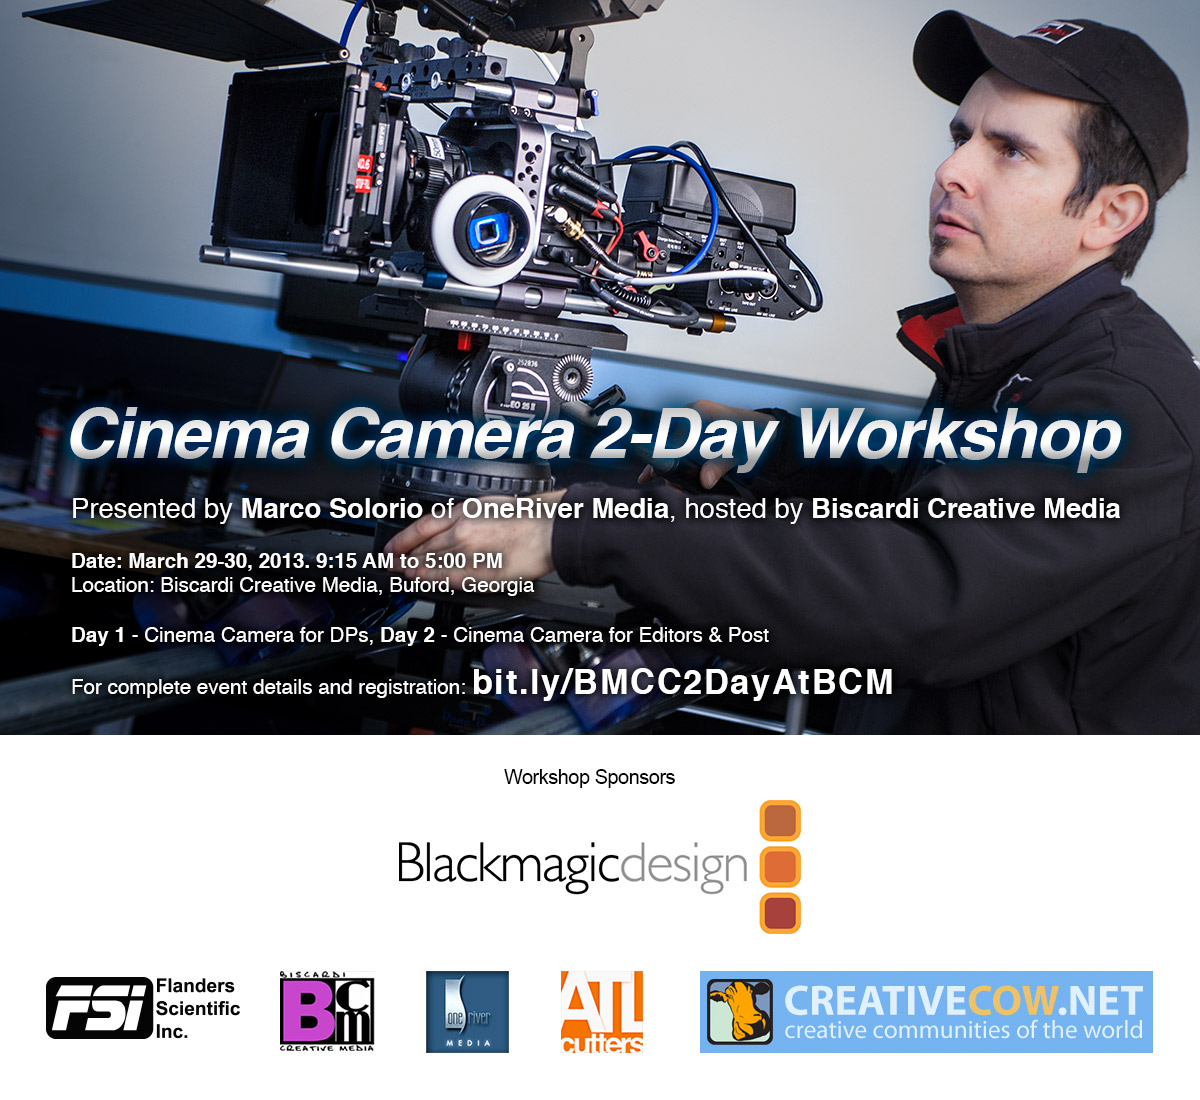 Marco_Solorio_BMCC_2Day_Workshop.jpg